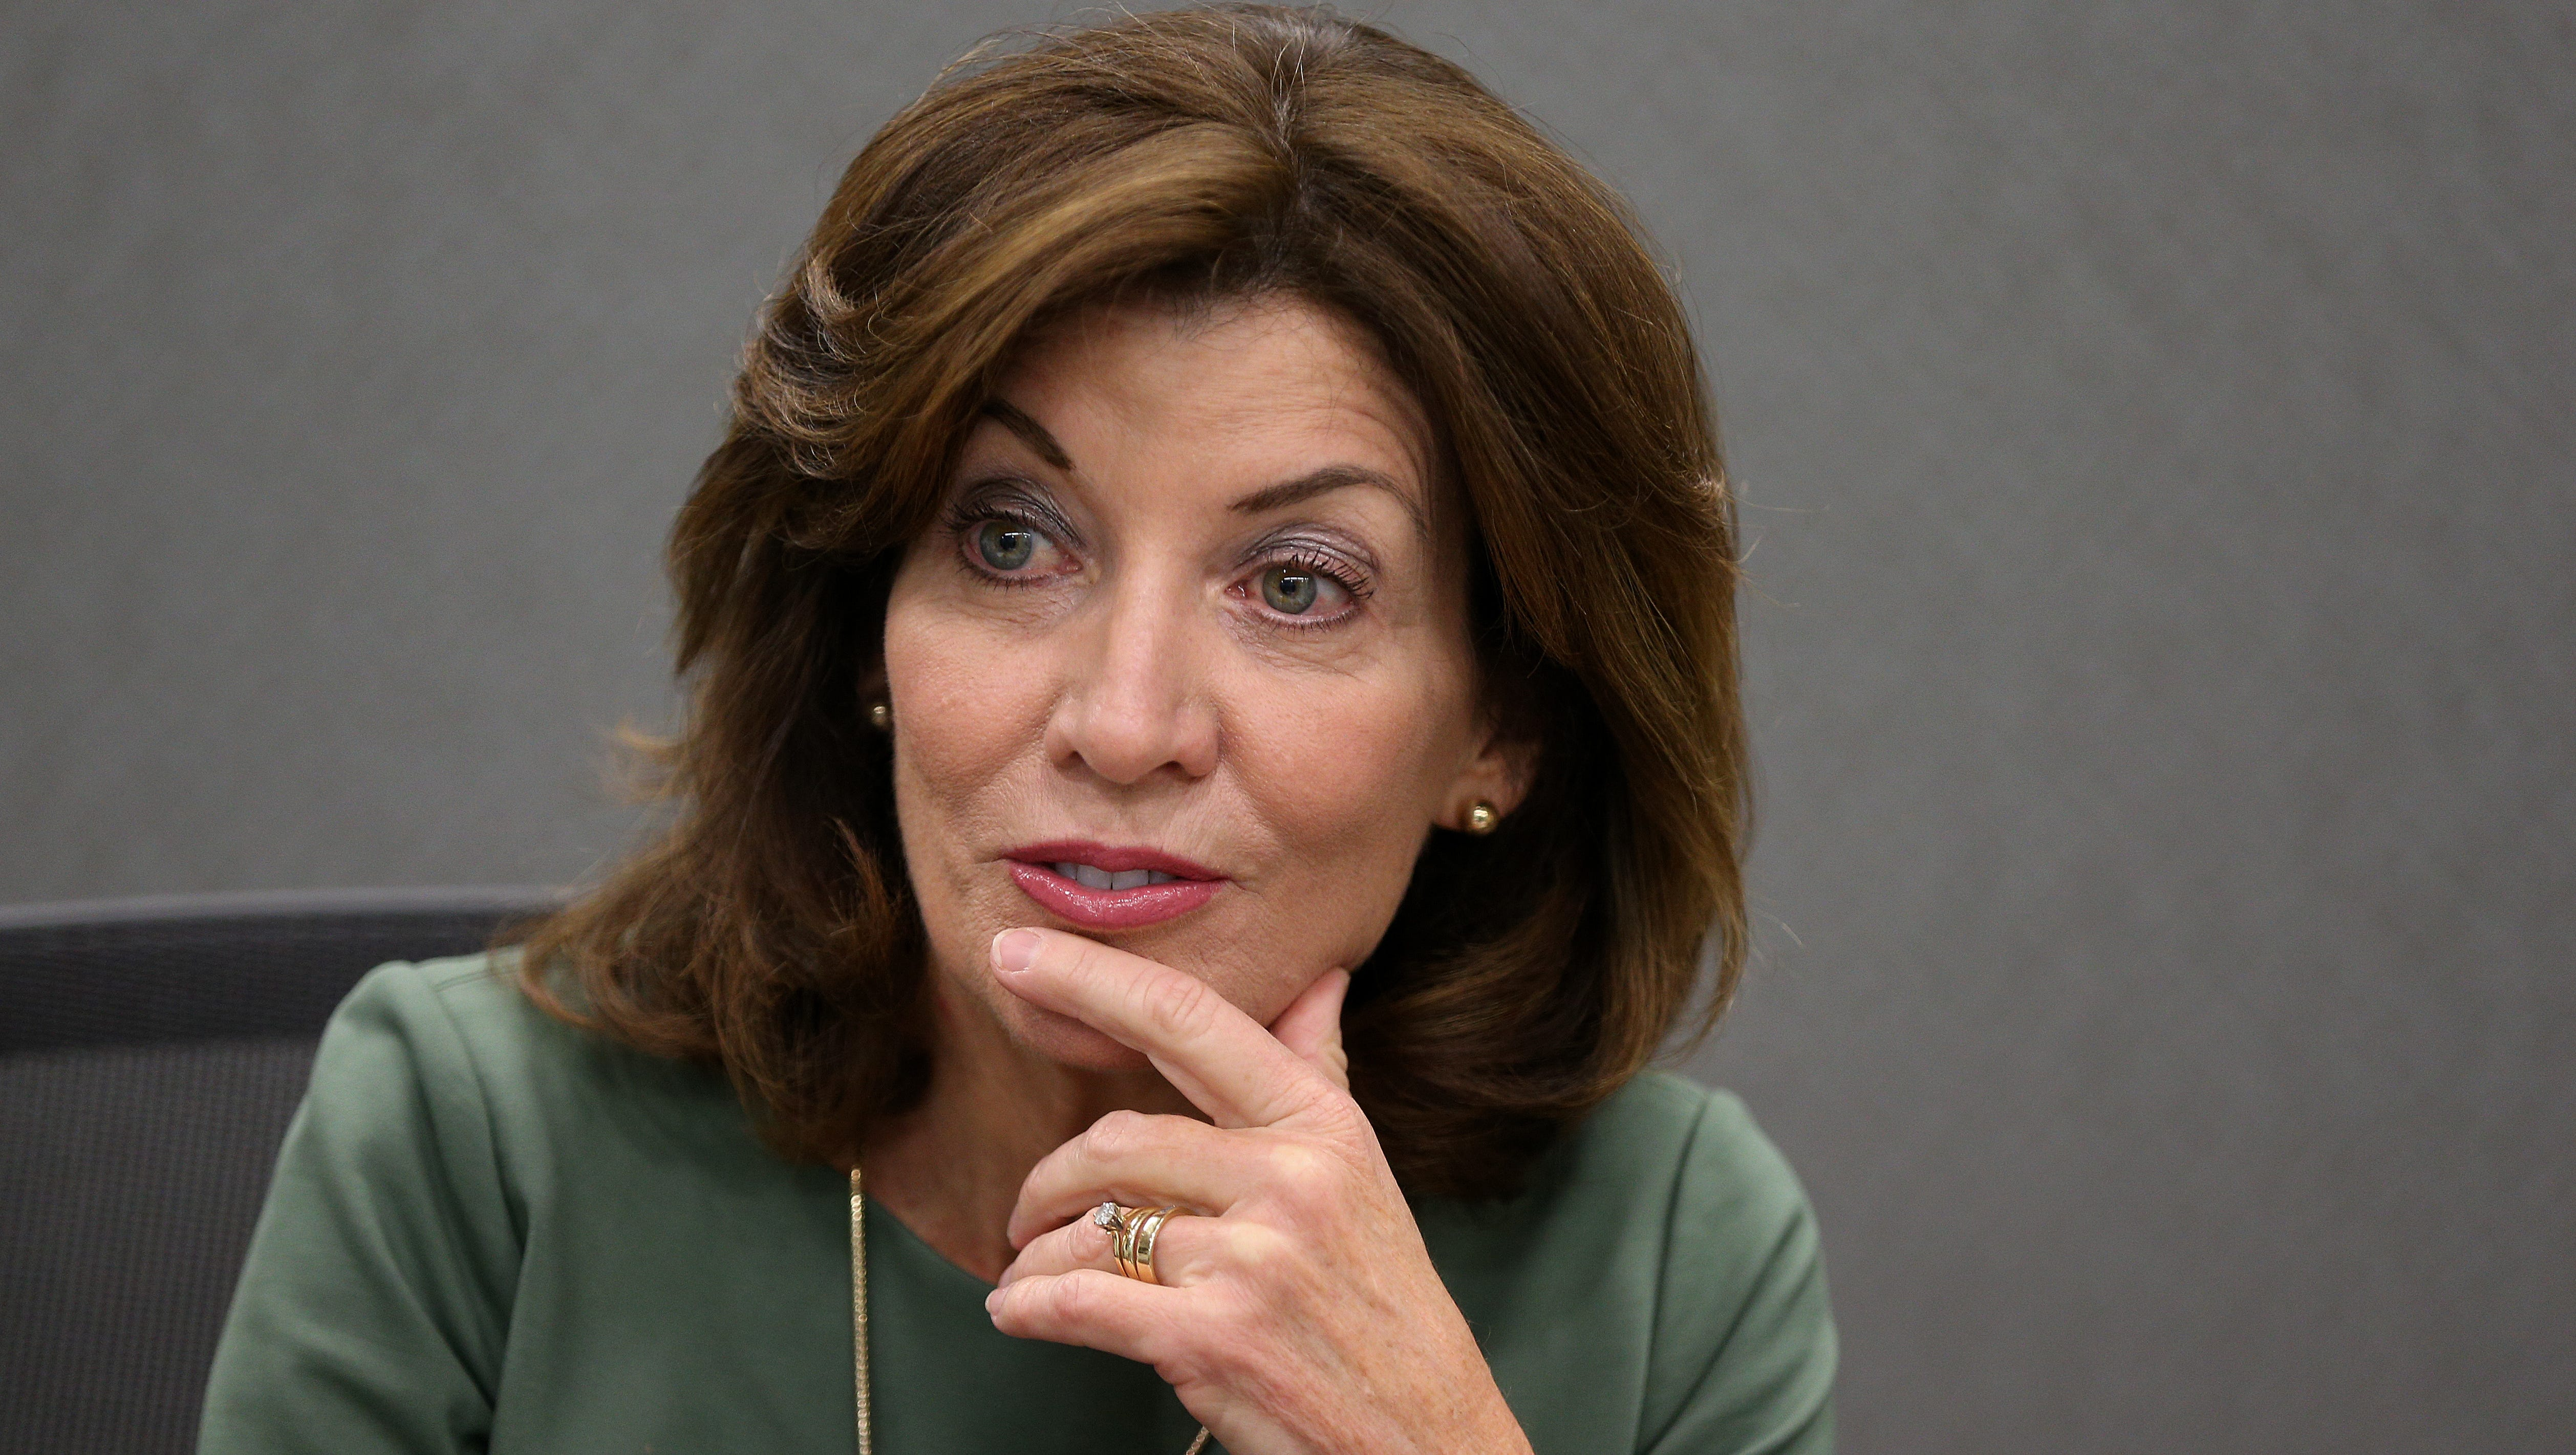 Kathy Hochul: 5 things to know about New York's next governor